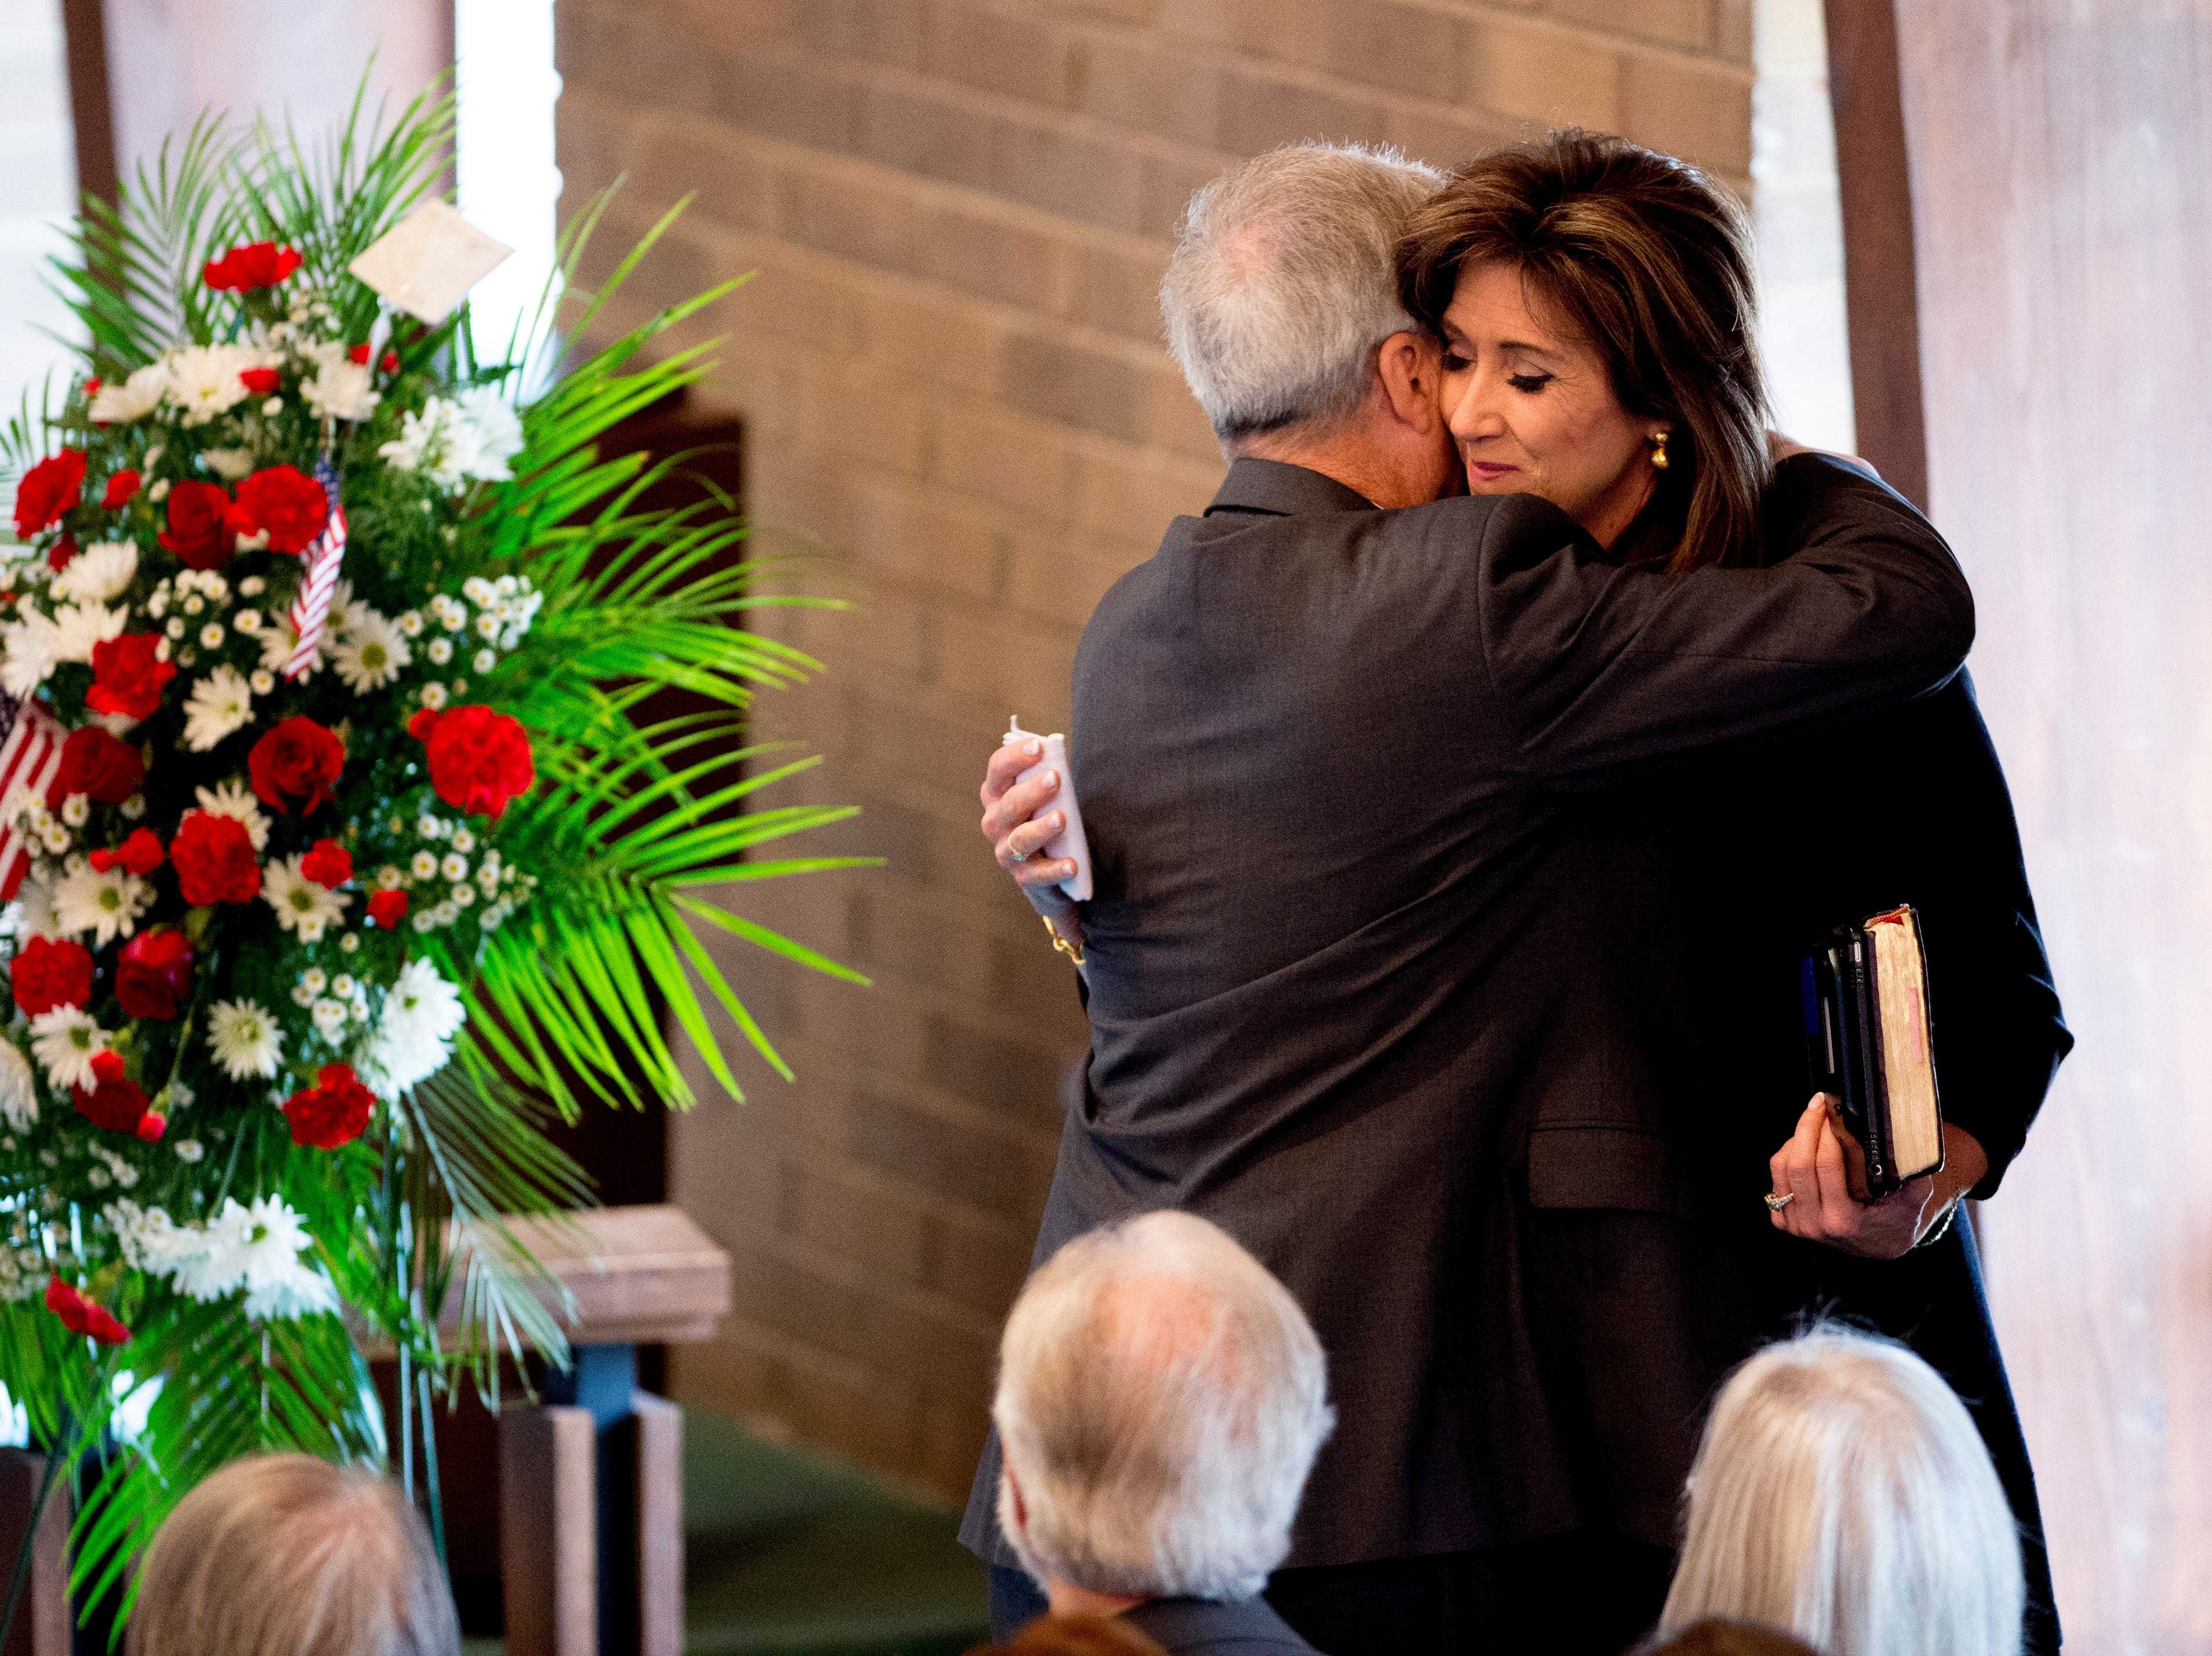 US Navy Lieutenant Commander Tammy Jo Shults hugs Tommy Mariner, husband of Rosemary Mariner, the US Navy's first female fighter pilot, during a funeral service for his wife at Norris United Methodist Church in Norris, Tennessee on Saturday, February 2, 2019. Mariner died January 24th of cancer.